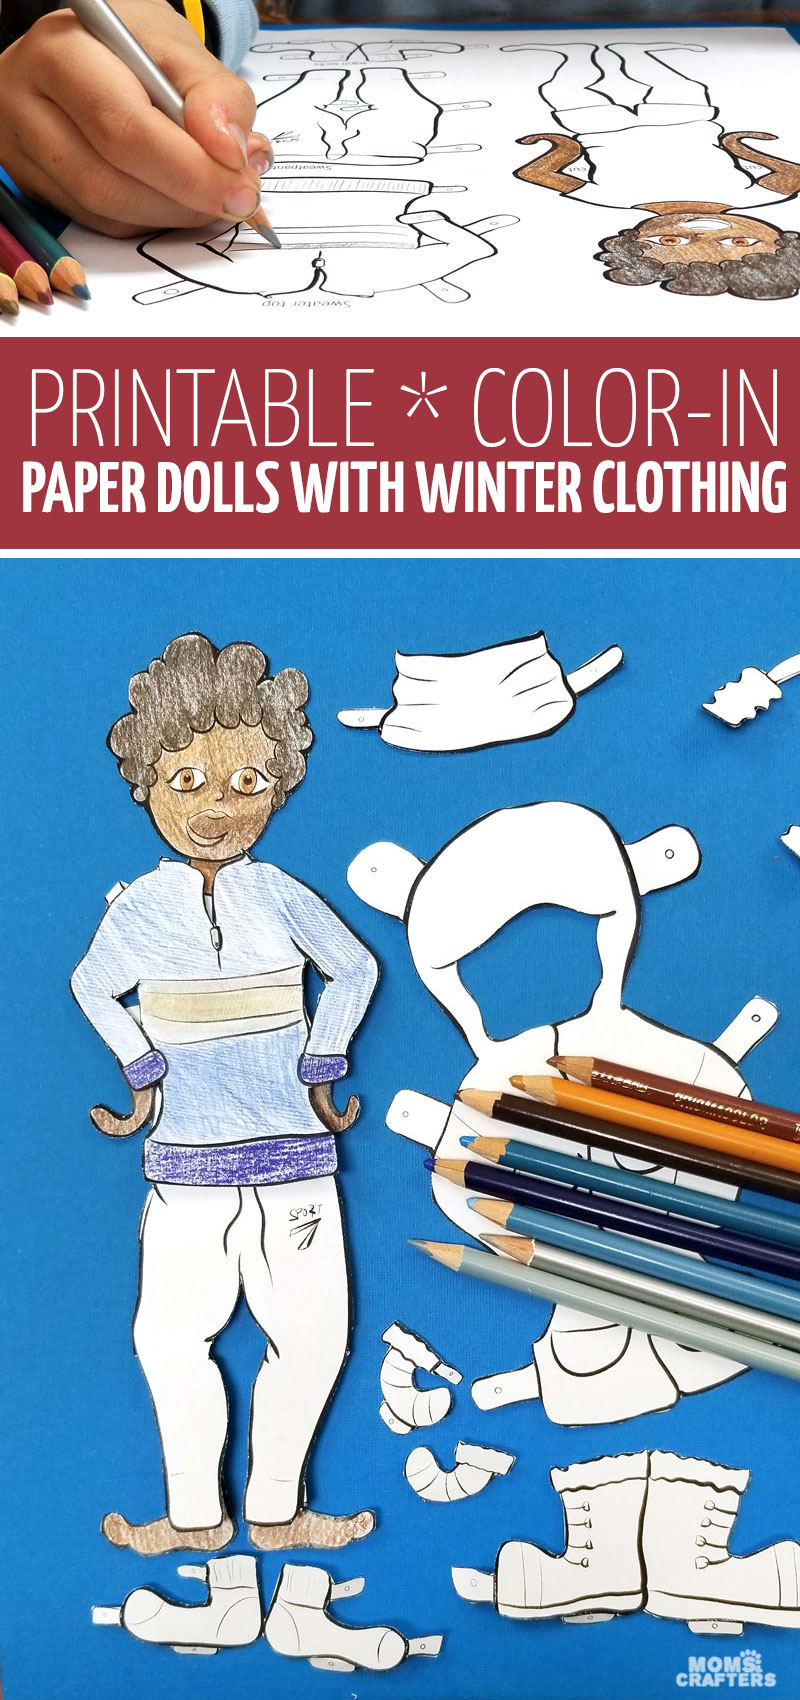 Add your own style to these color in dress up dolls! Paper dolls teach kids about appropriate winter wear and are a fun paper toy template to enjoy after.